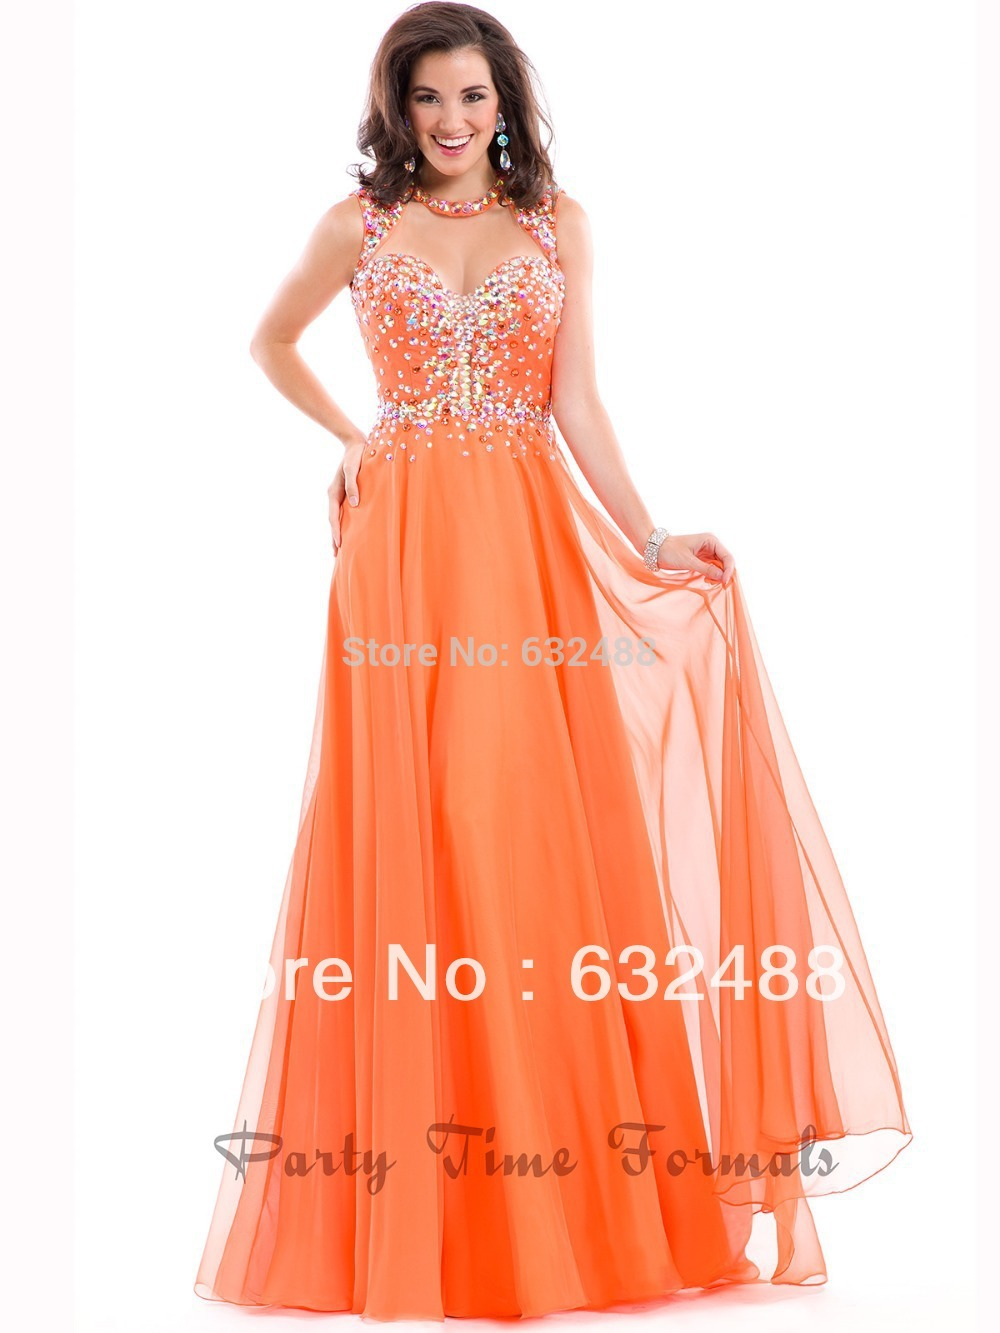 What store buys prom dresses